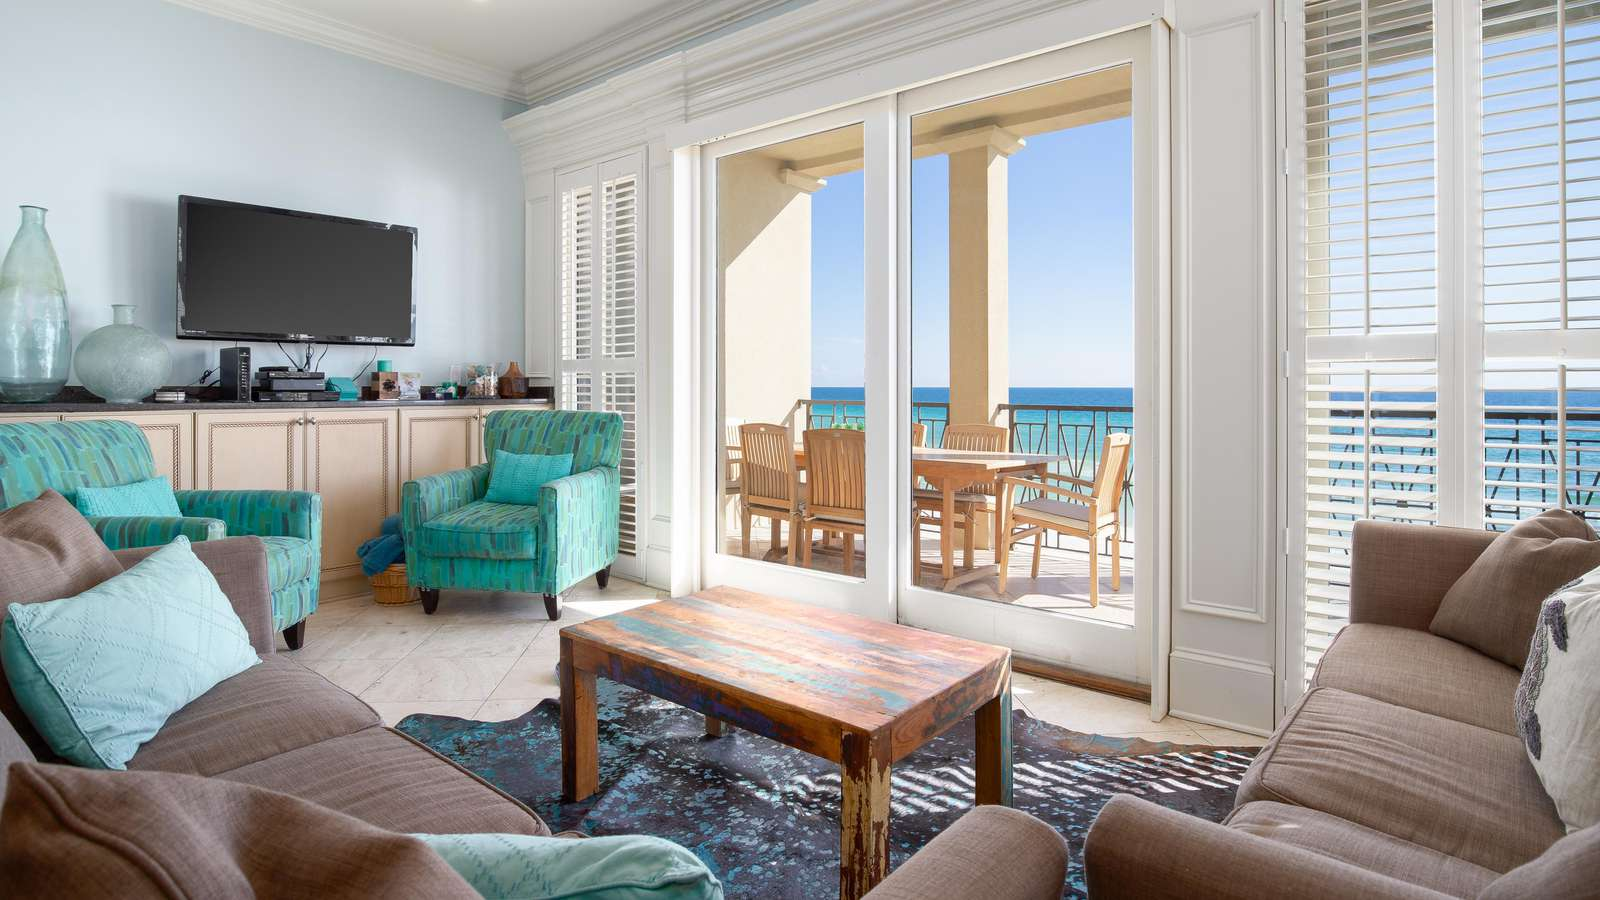 Enjoy the view while you relax in the comfort of this beautiful living room.